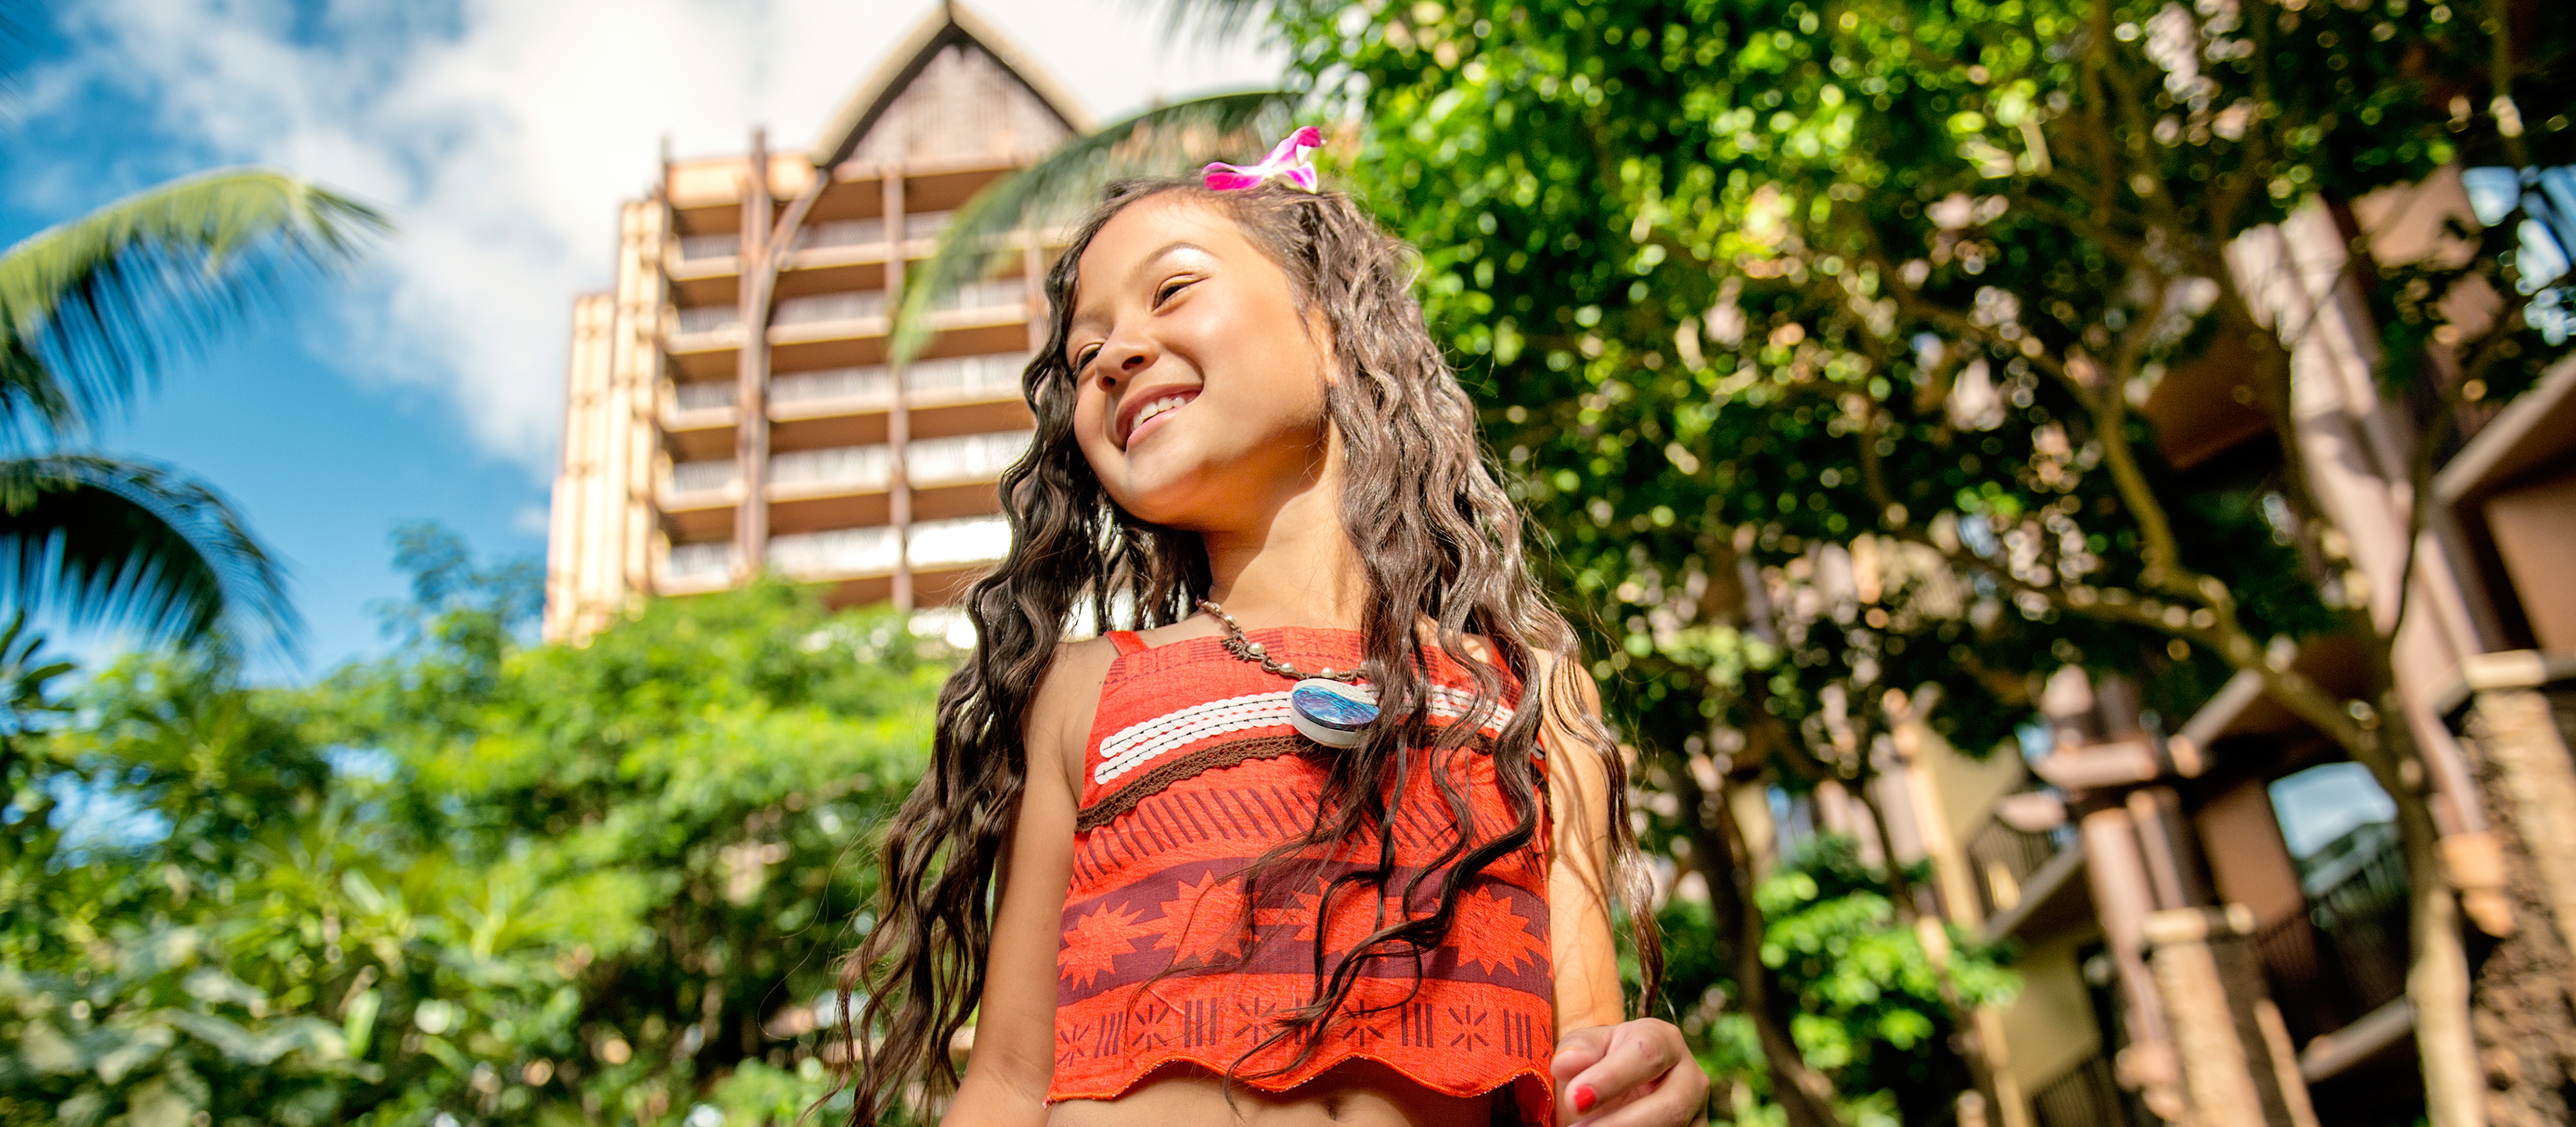 A young girl stands in front of Aulani and shows off her Moana transformation, complete with a tropical flower in her wavy hair, top with island prints and necklace with a seashell charm.